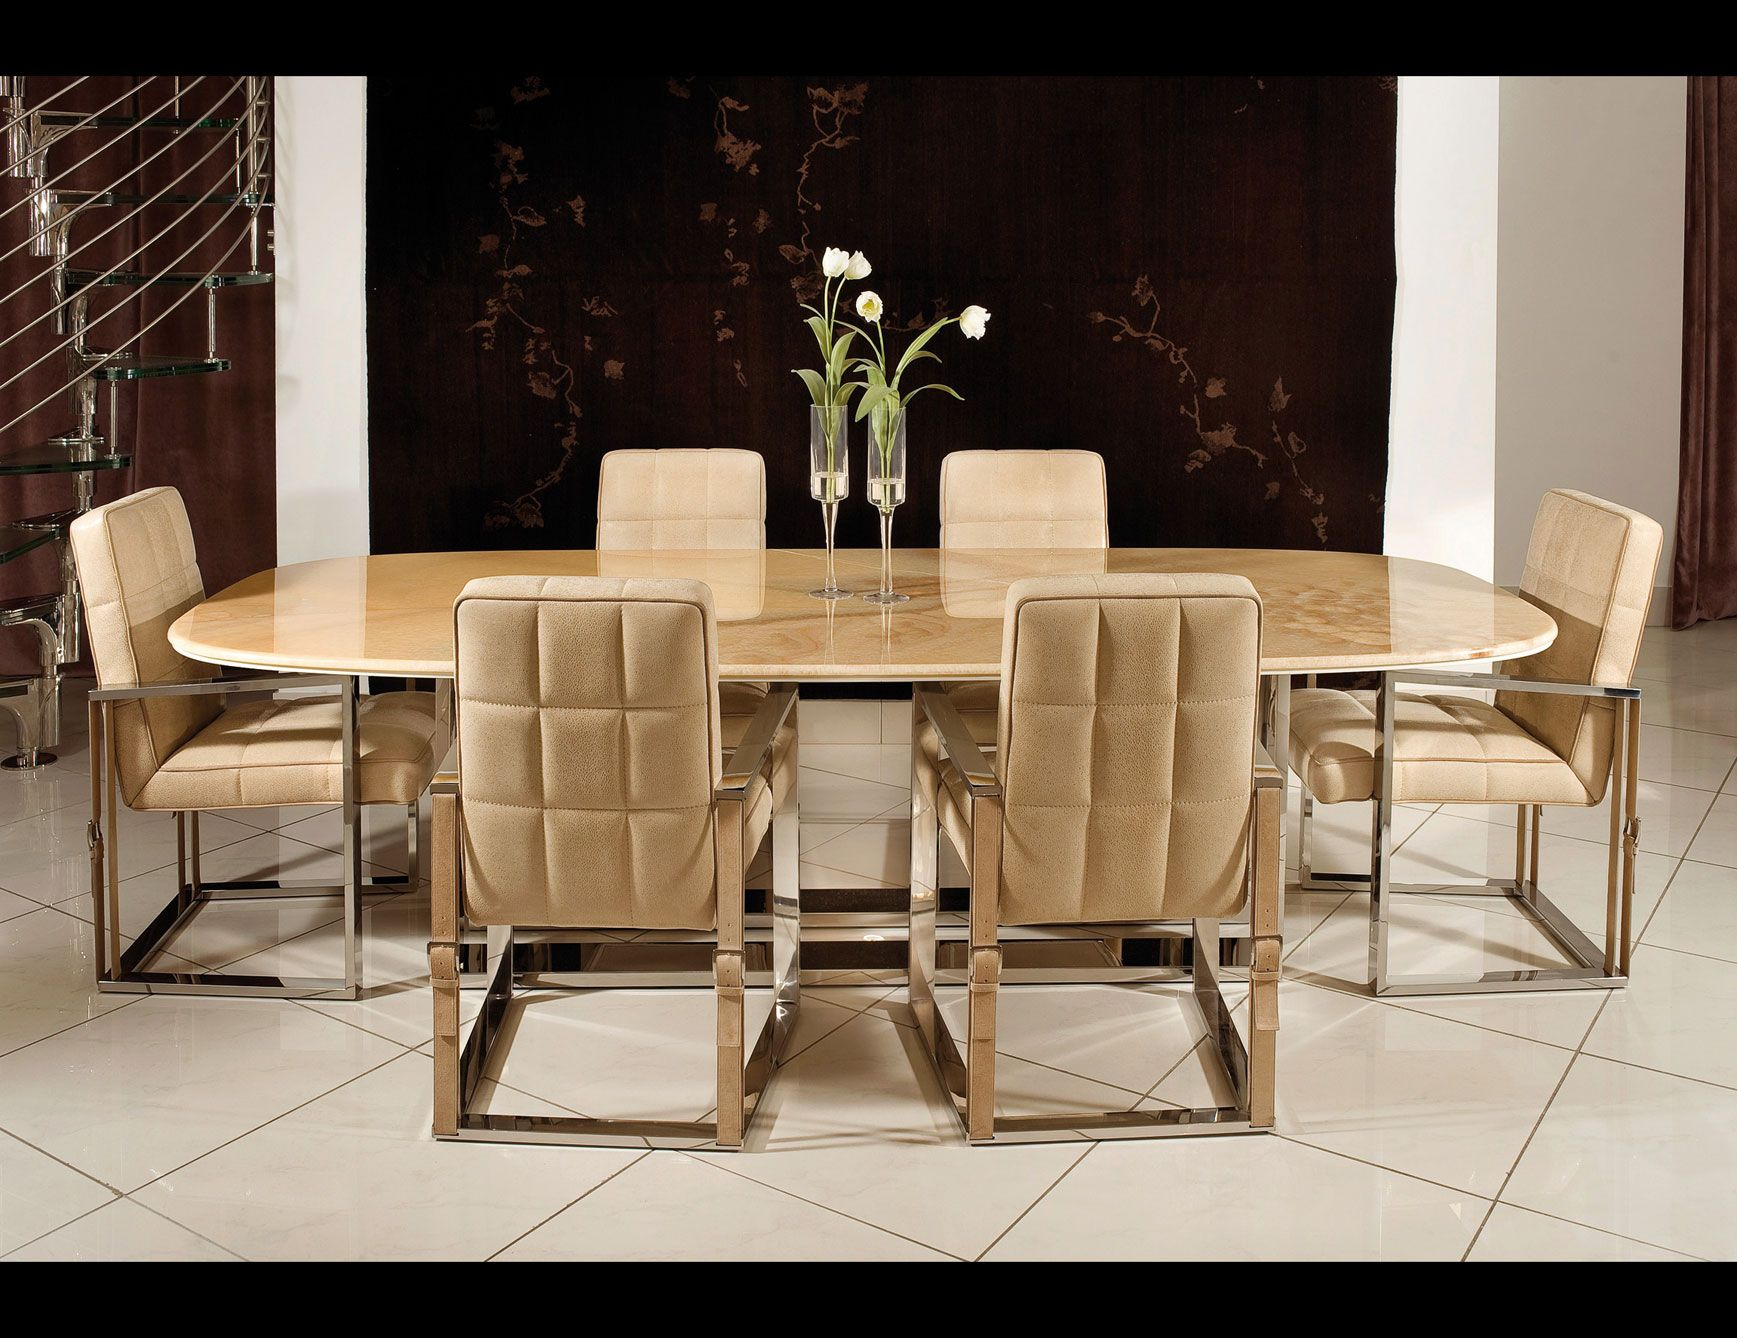 Voyager Luxury Italian Dining Table With Base Made Of Two Parallel Elements  In Shiny Stainless Steel And Top In Marble And Shiny Lacquered Shaped Wood.